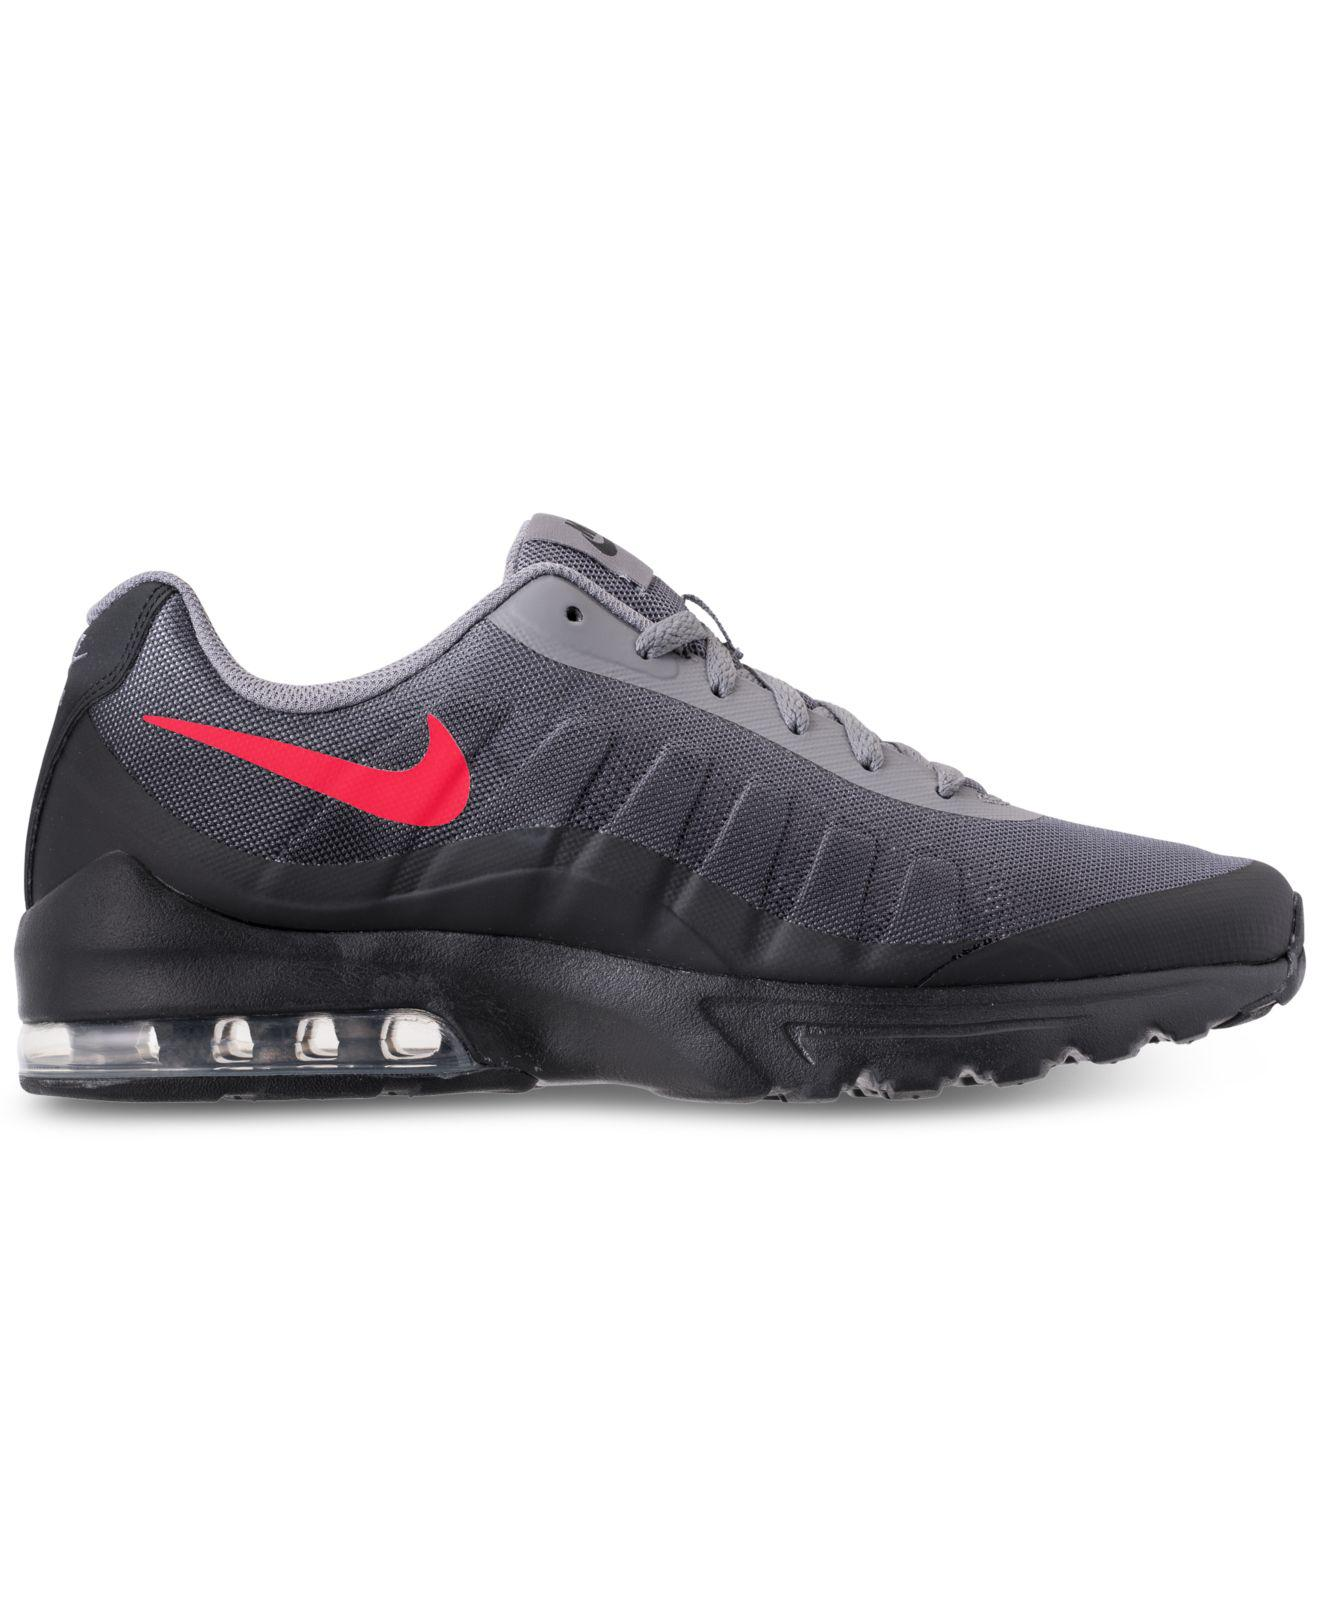 38b7fc70509c Lyst - Nike Air Max Invigor Print Running Sneakers From Finish Line in Black  for Men